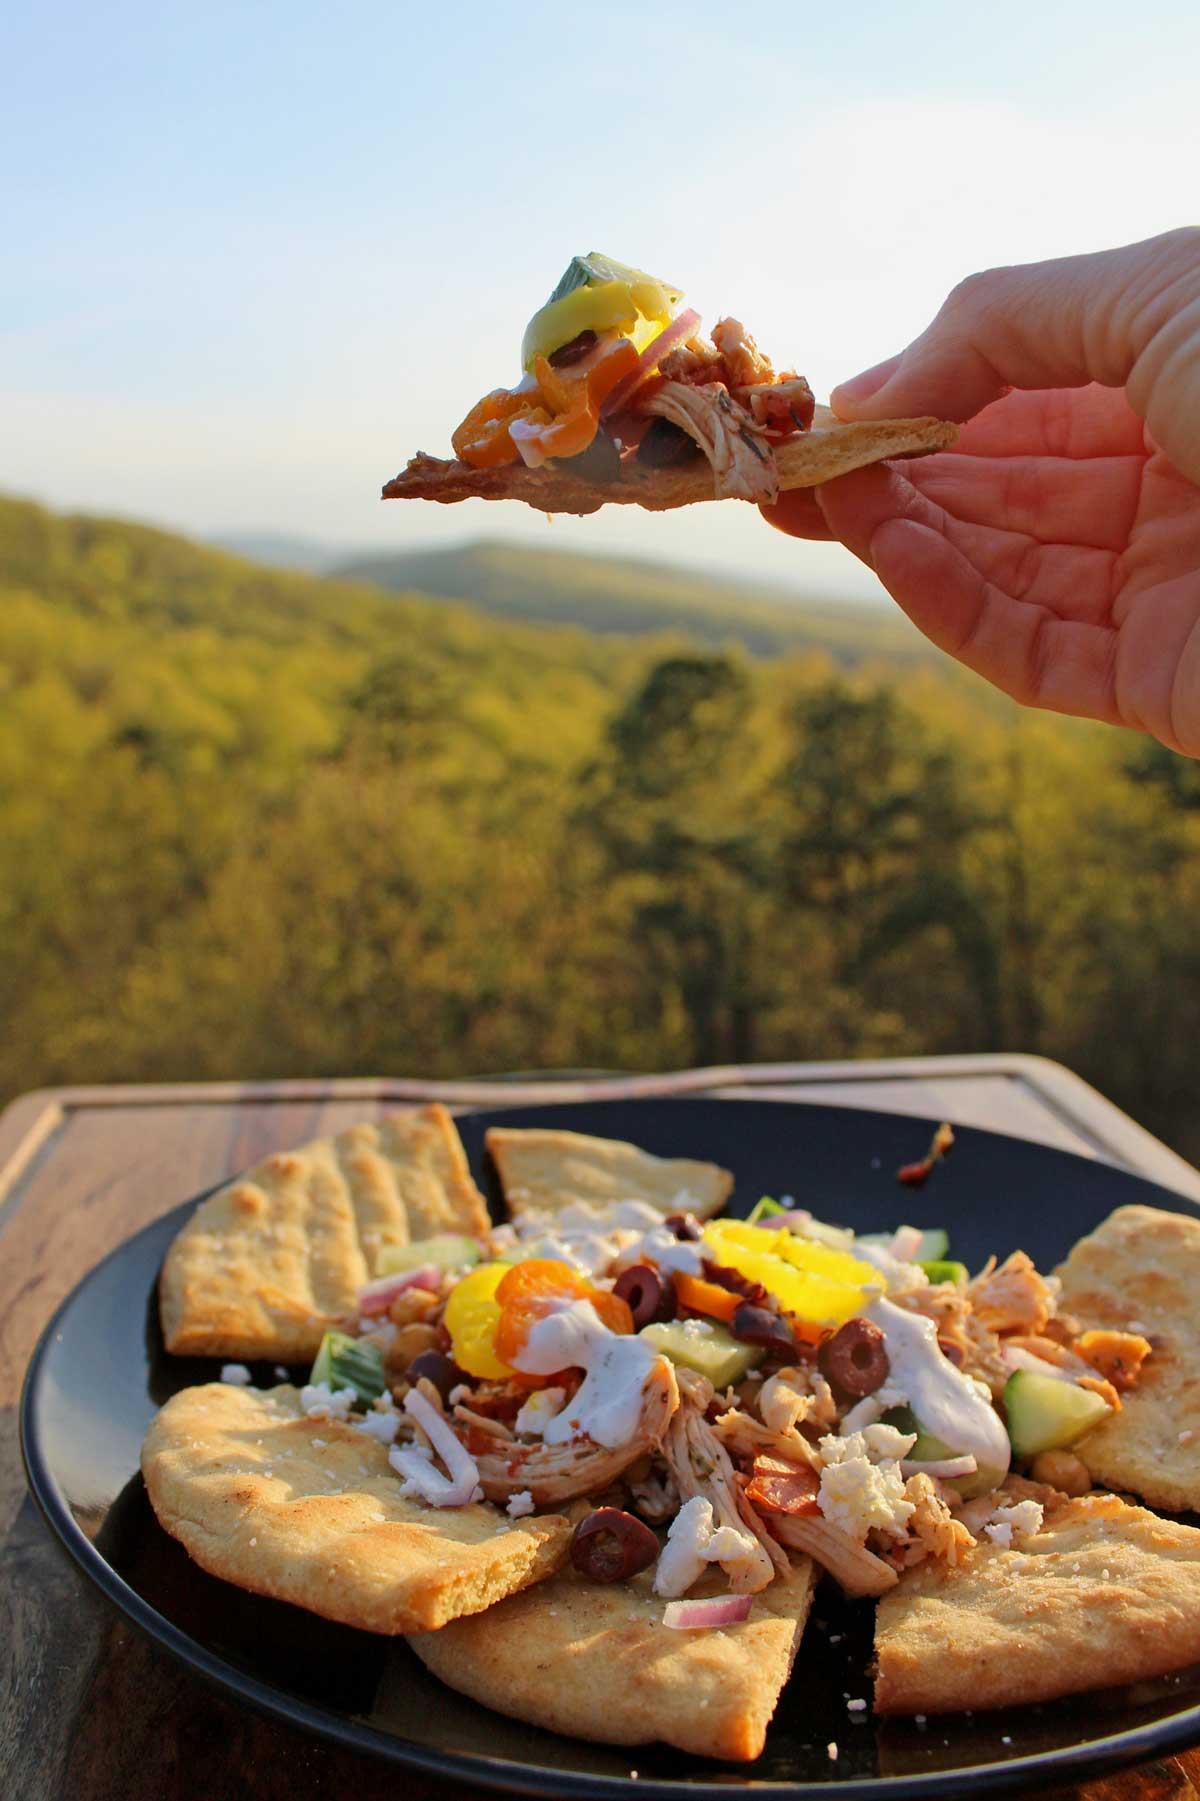 Greek nachos are a lighter healthier twist on traditional nachos. A fun flavor-packed culinary mashup combing two food favorites: nachos and Greek salad.